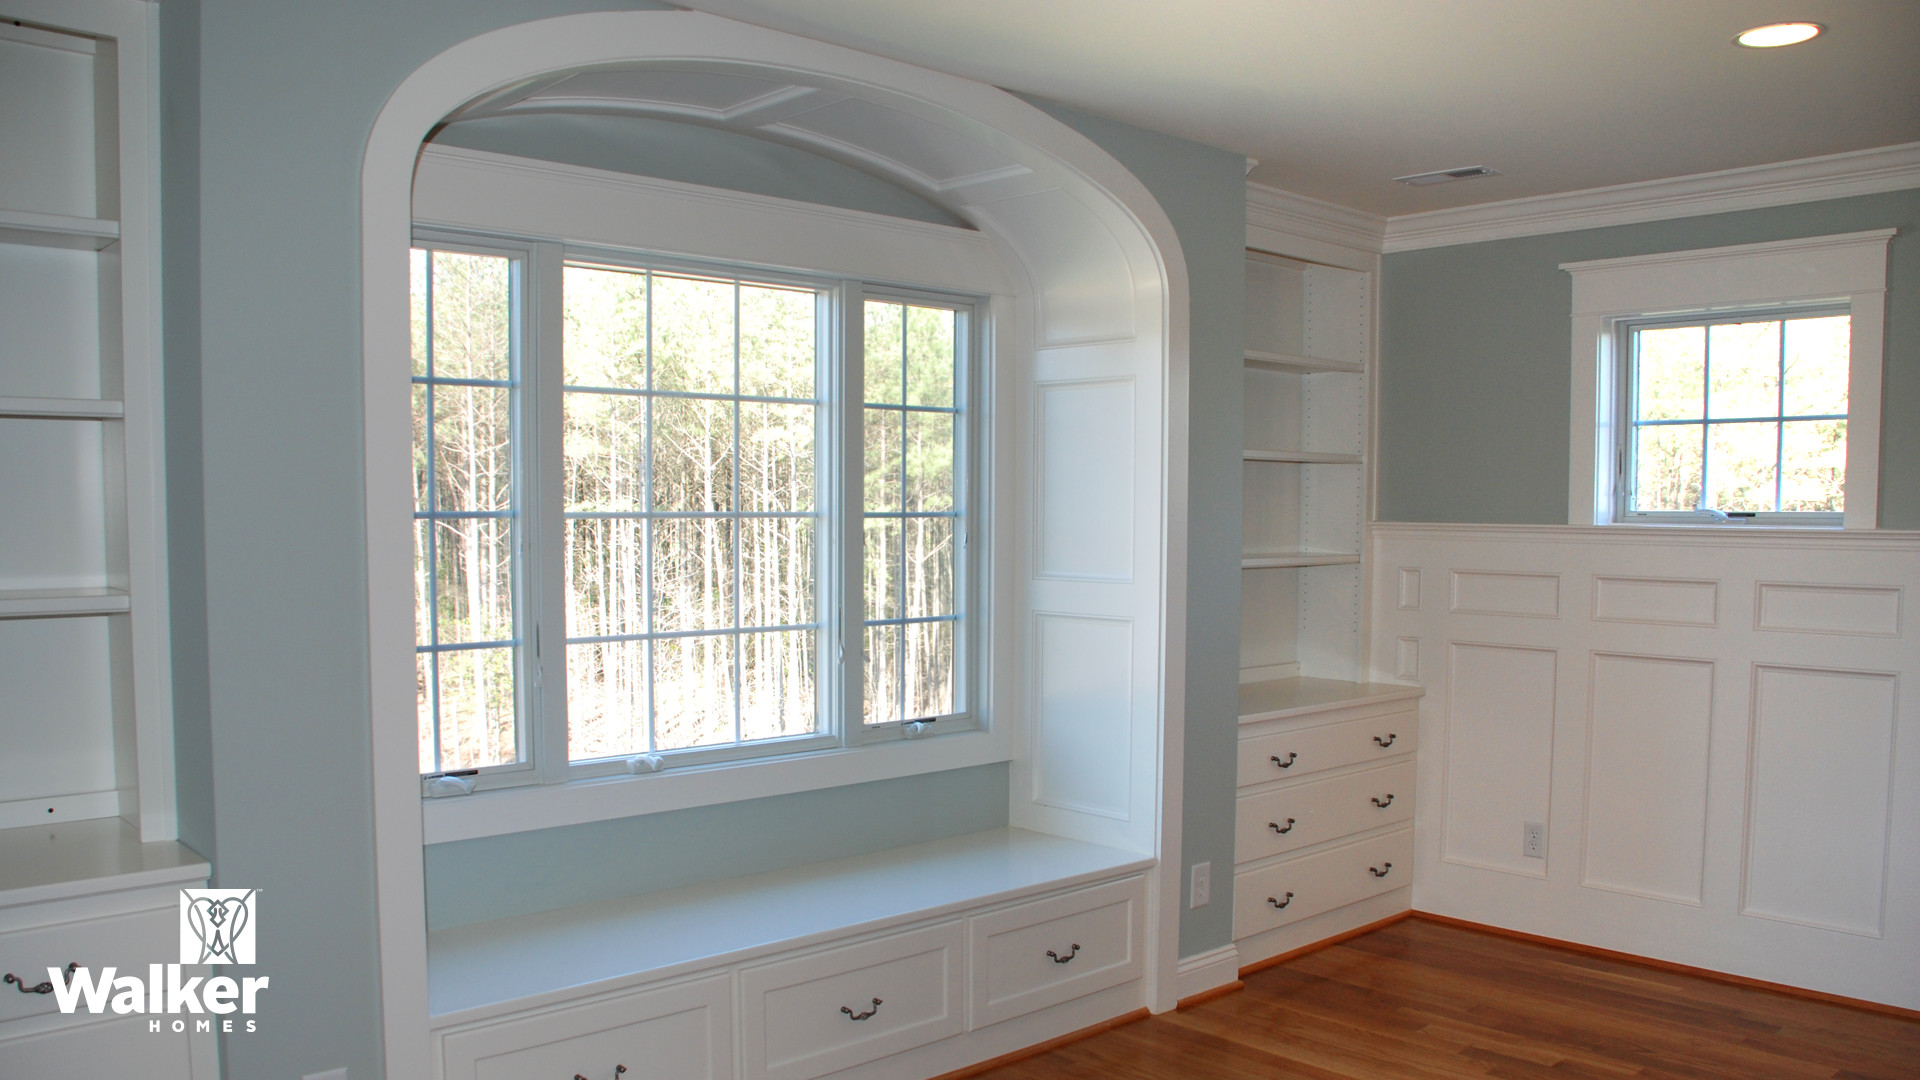 Master Bedroom cabinetry and millwork from a custom home design by Walker Homes in Glen Allen, Virginia